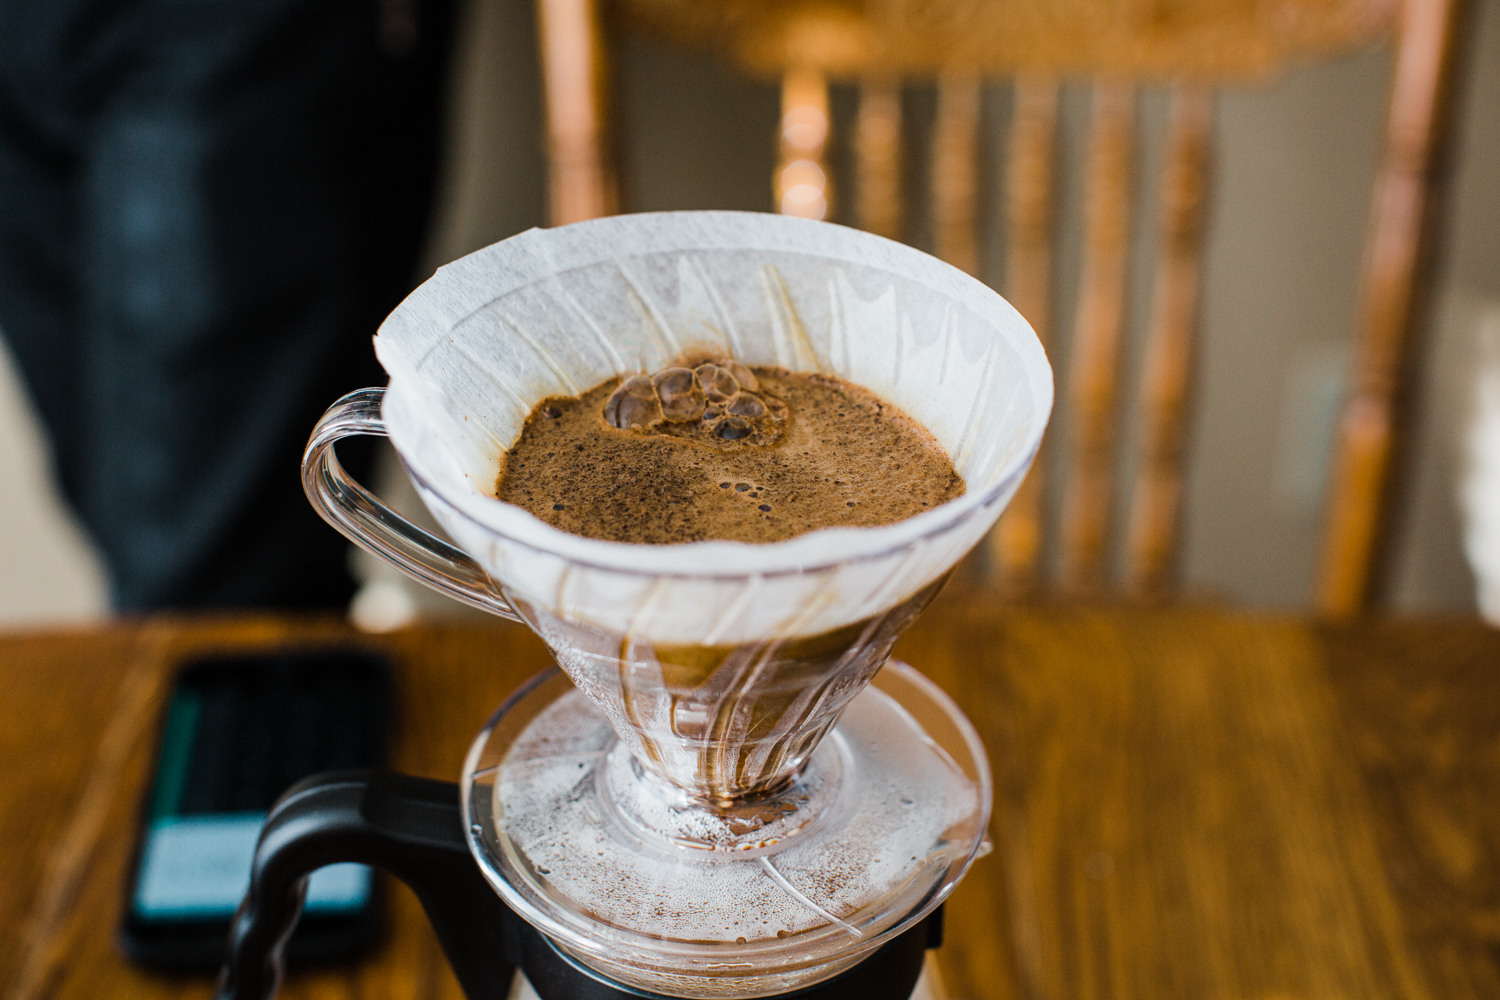 A plastic Hario V60 with coffee blooming inside one of Hario's new tabbed filters. The V60 is sitting on top of a size 03 Hario carafe on top of a wooden table with a wooden chair behind it.